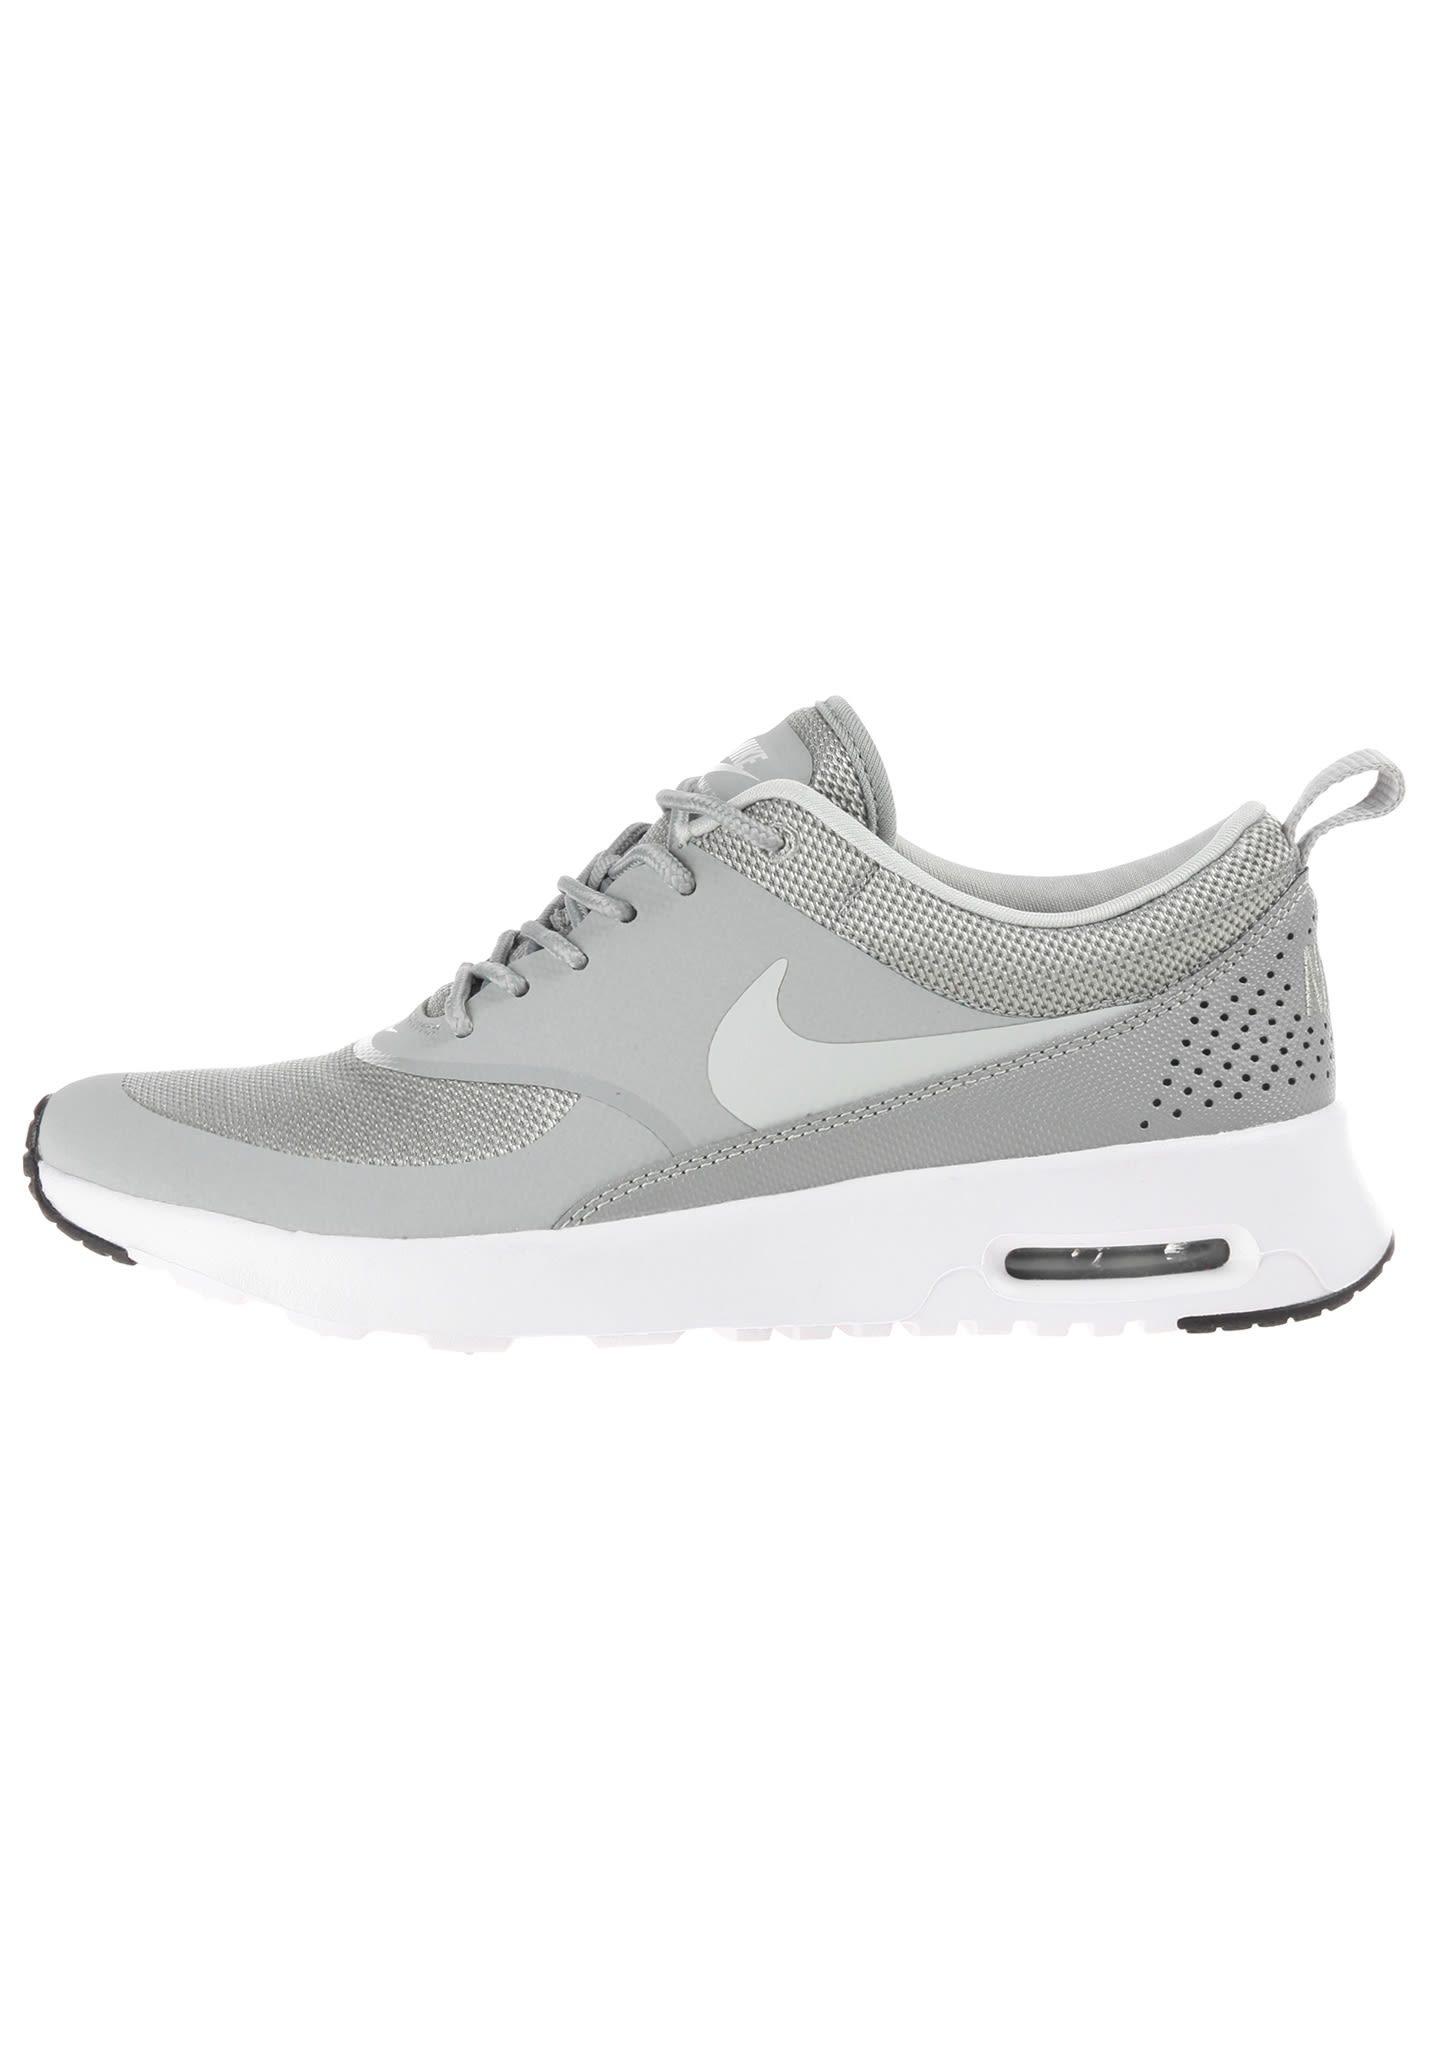 the best attitude 6cc04 d0f52 NIKE SPORTSWEAR Air Max Thea - Sneaker für Damen - Grün - Planet Sports